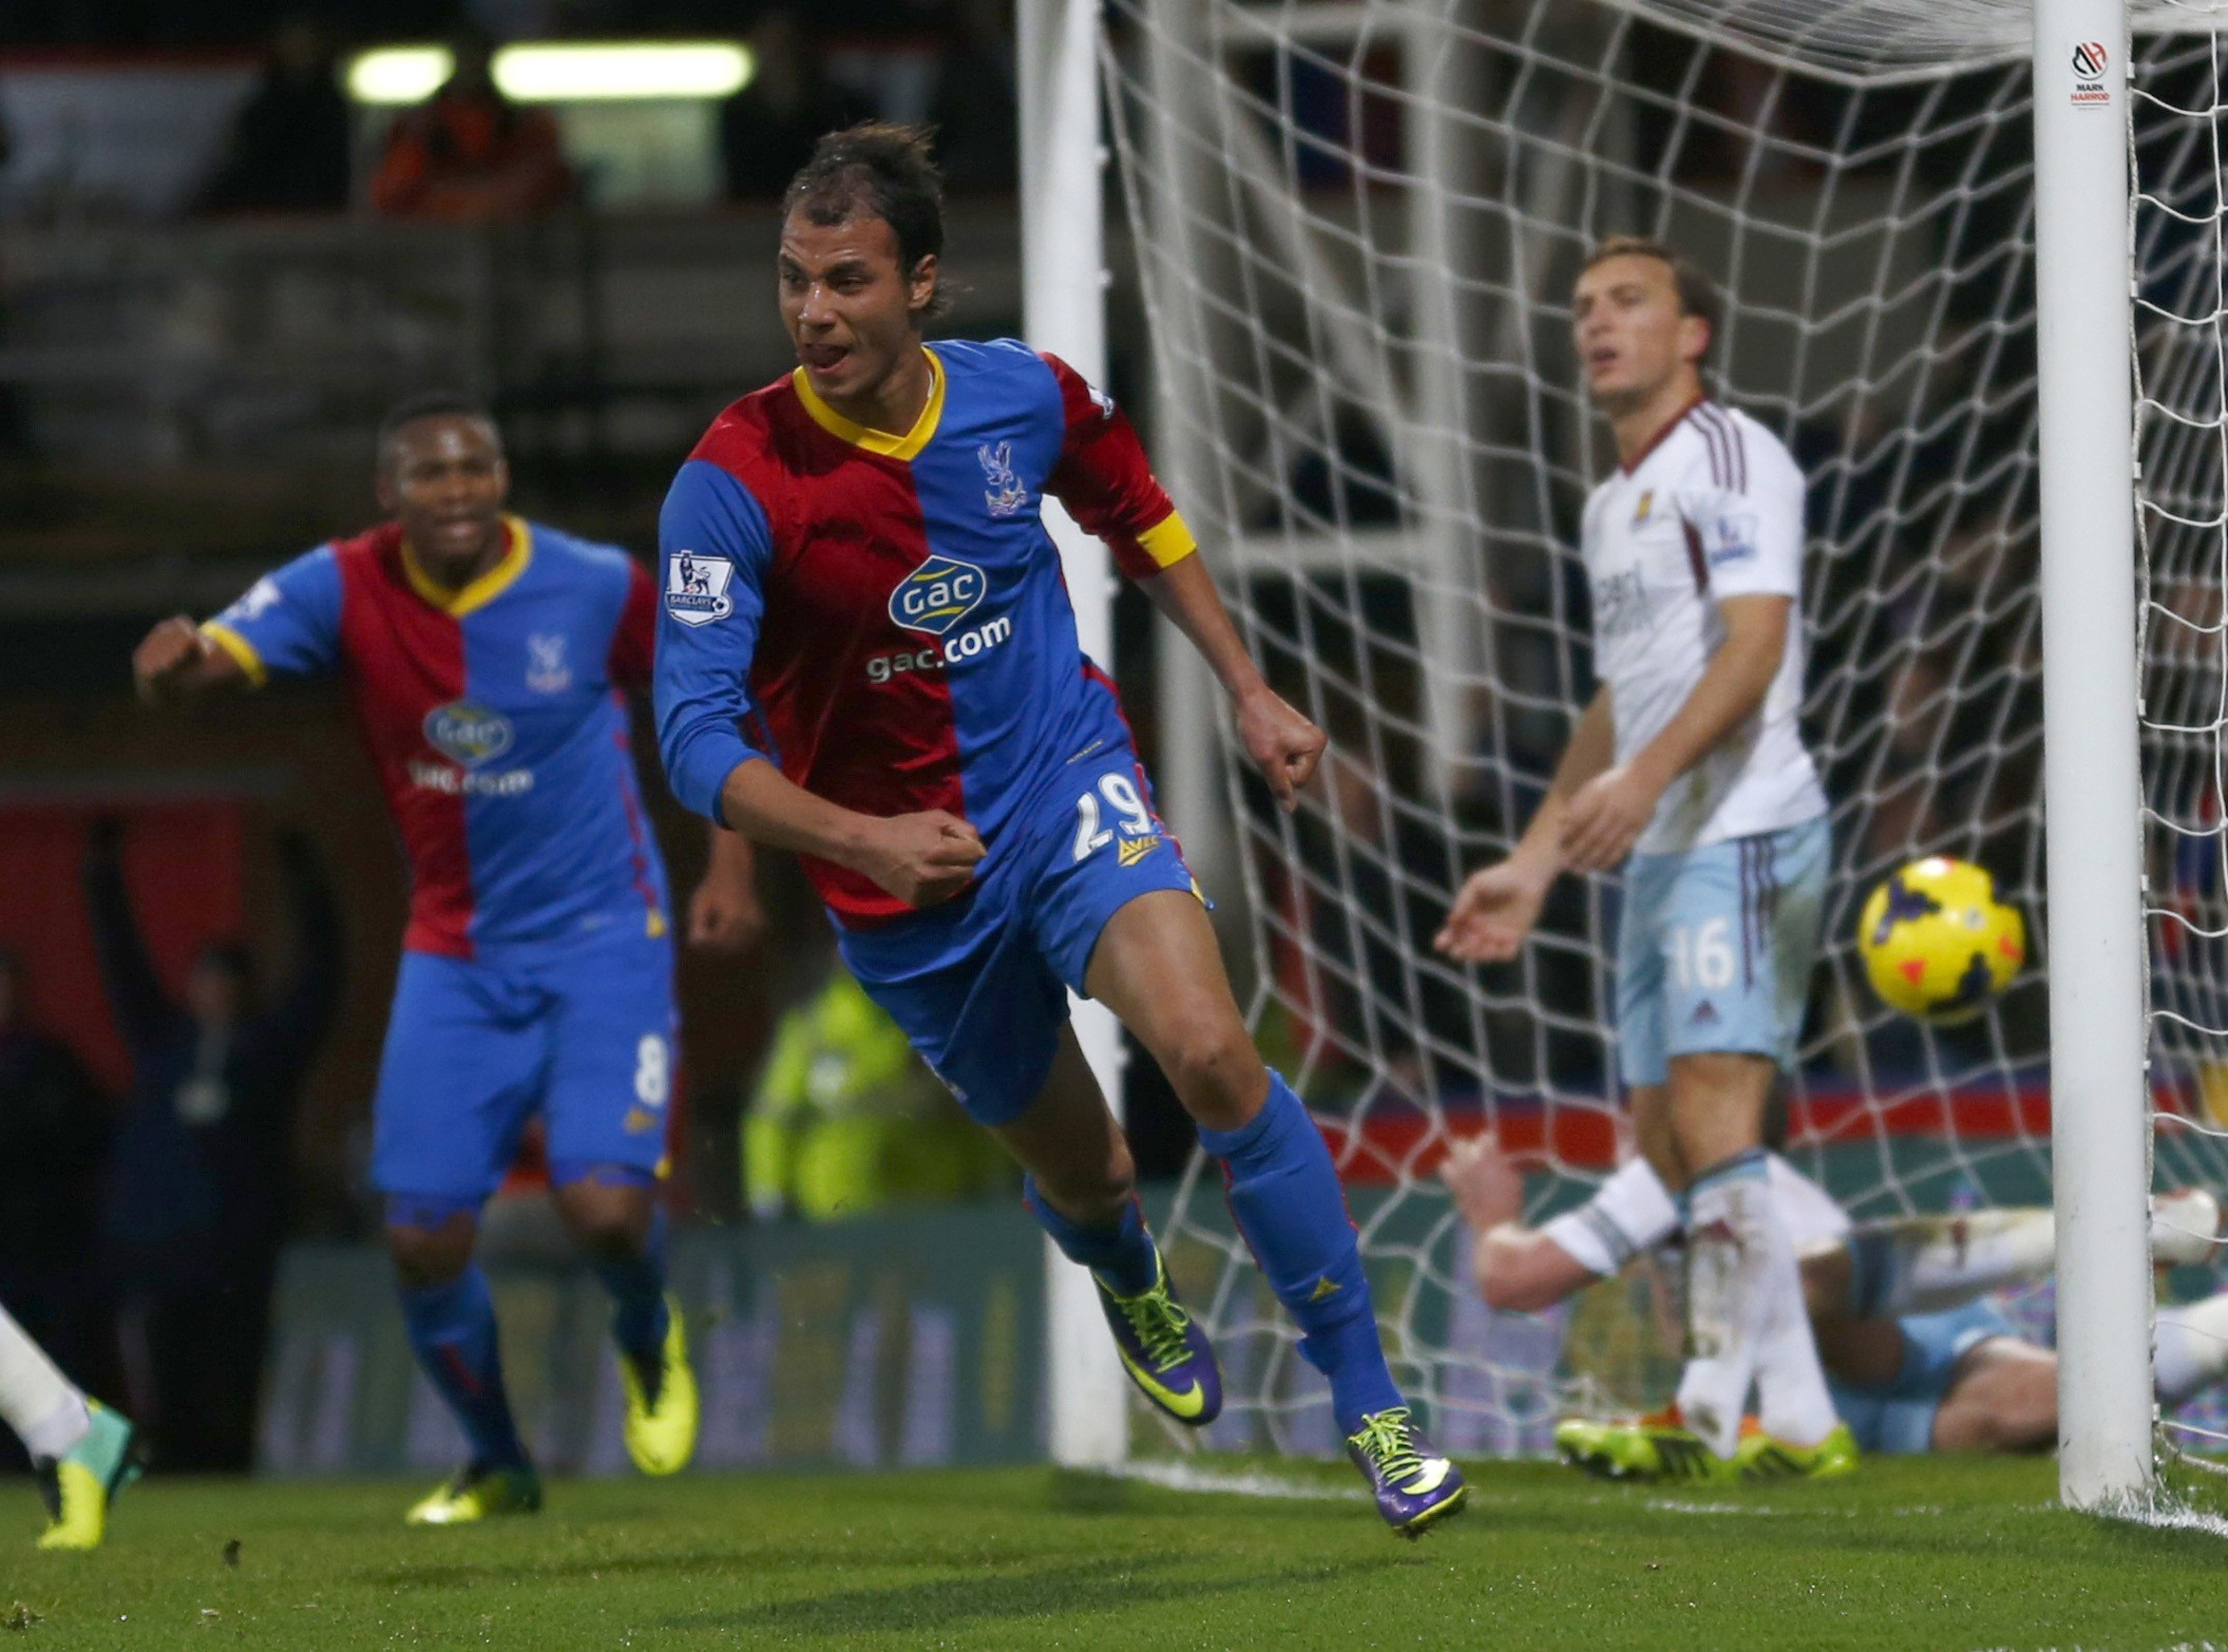 Crystal Palace's Chamakh scores a goal against West Ham during their English Premier League soccer match at Selhurst Park in London